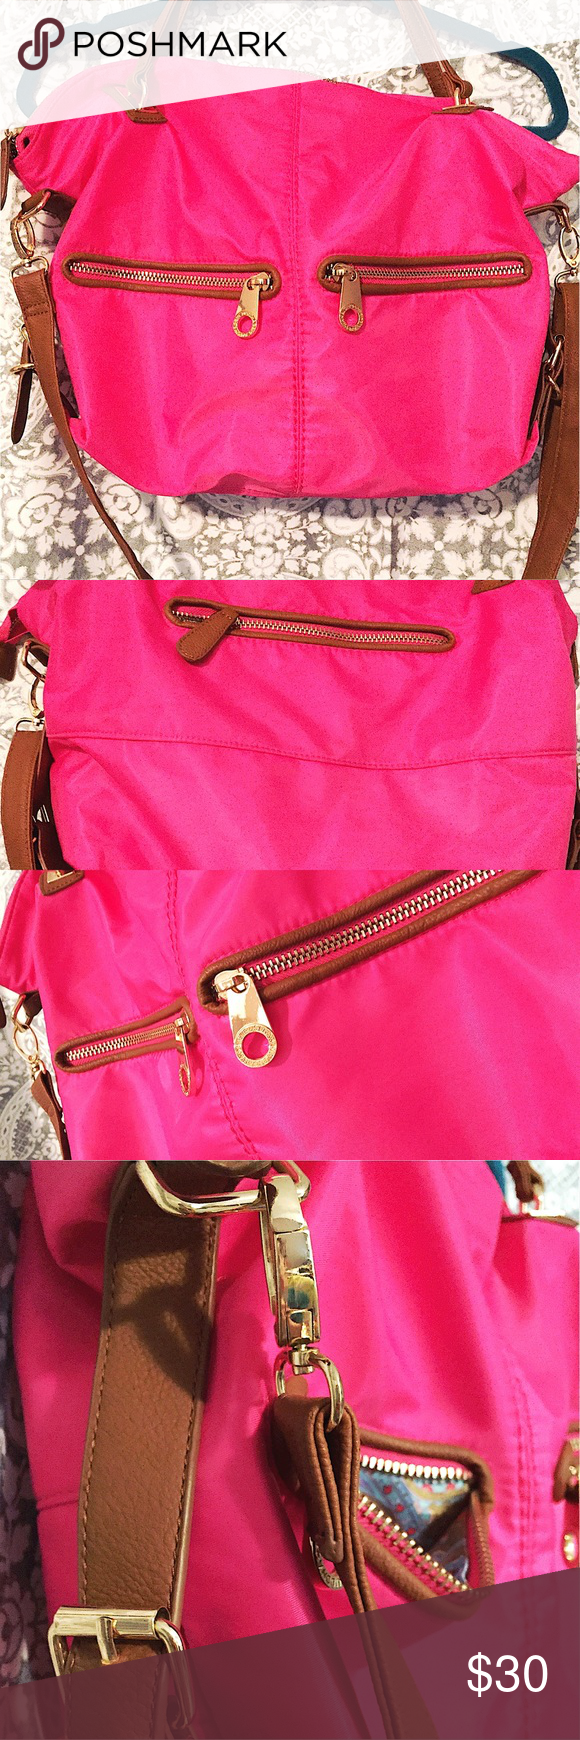 S Pink Nylon Pouch